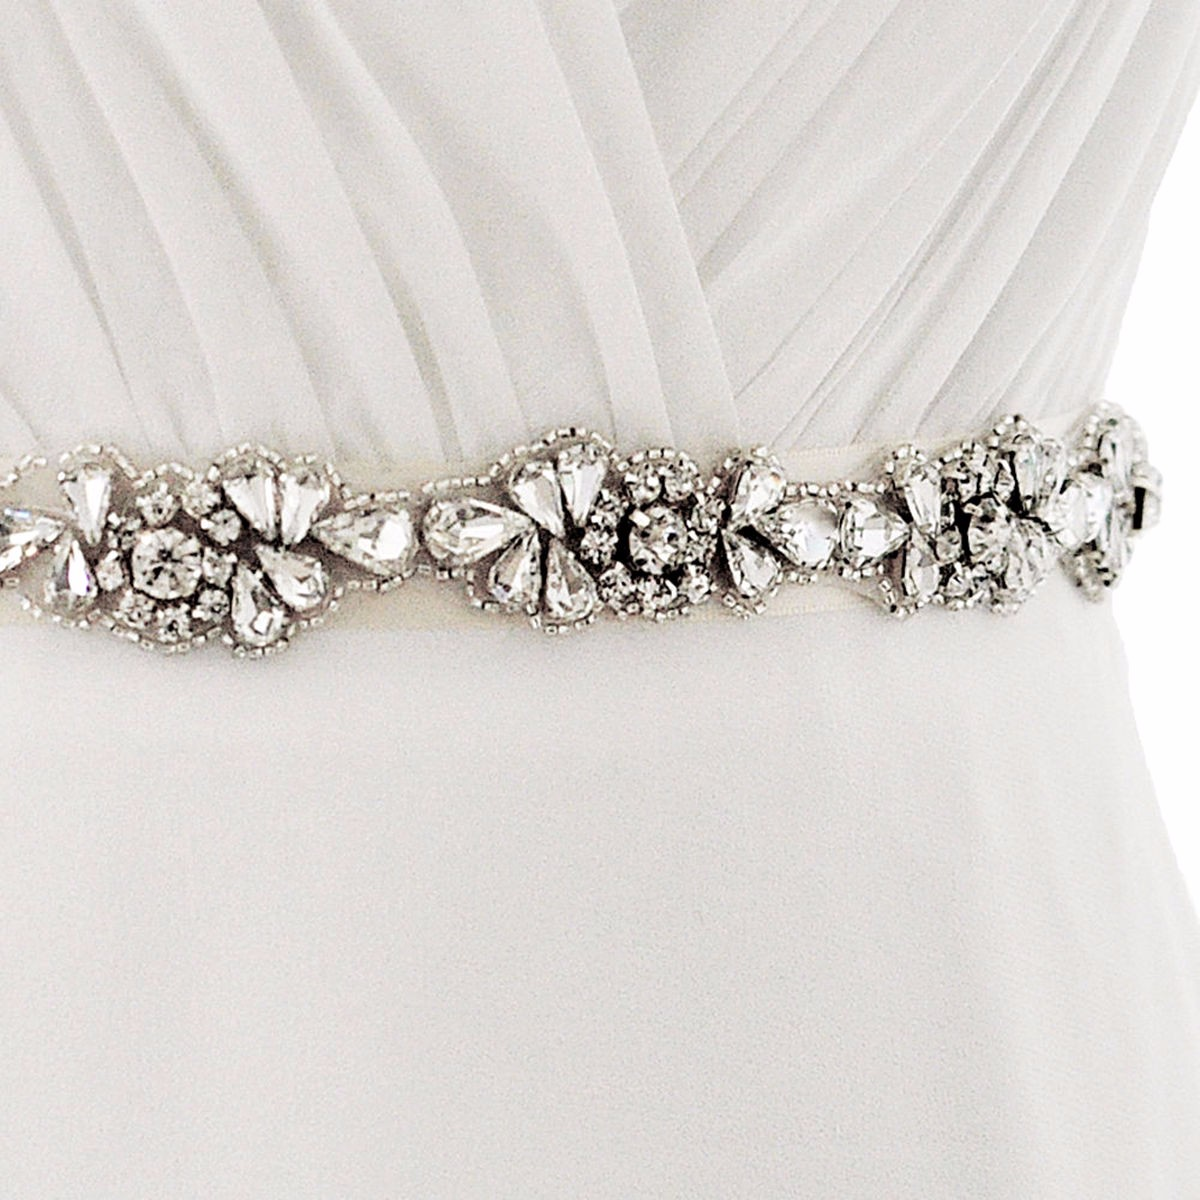 Shiny Diamond Wedding Girdle Dress Bride Bridesmaid Satin Ribbon Yarn Waist Belt